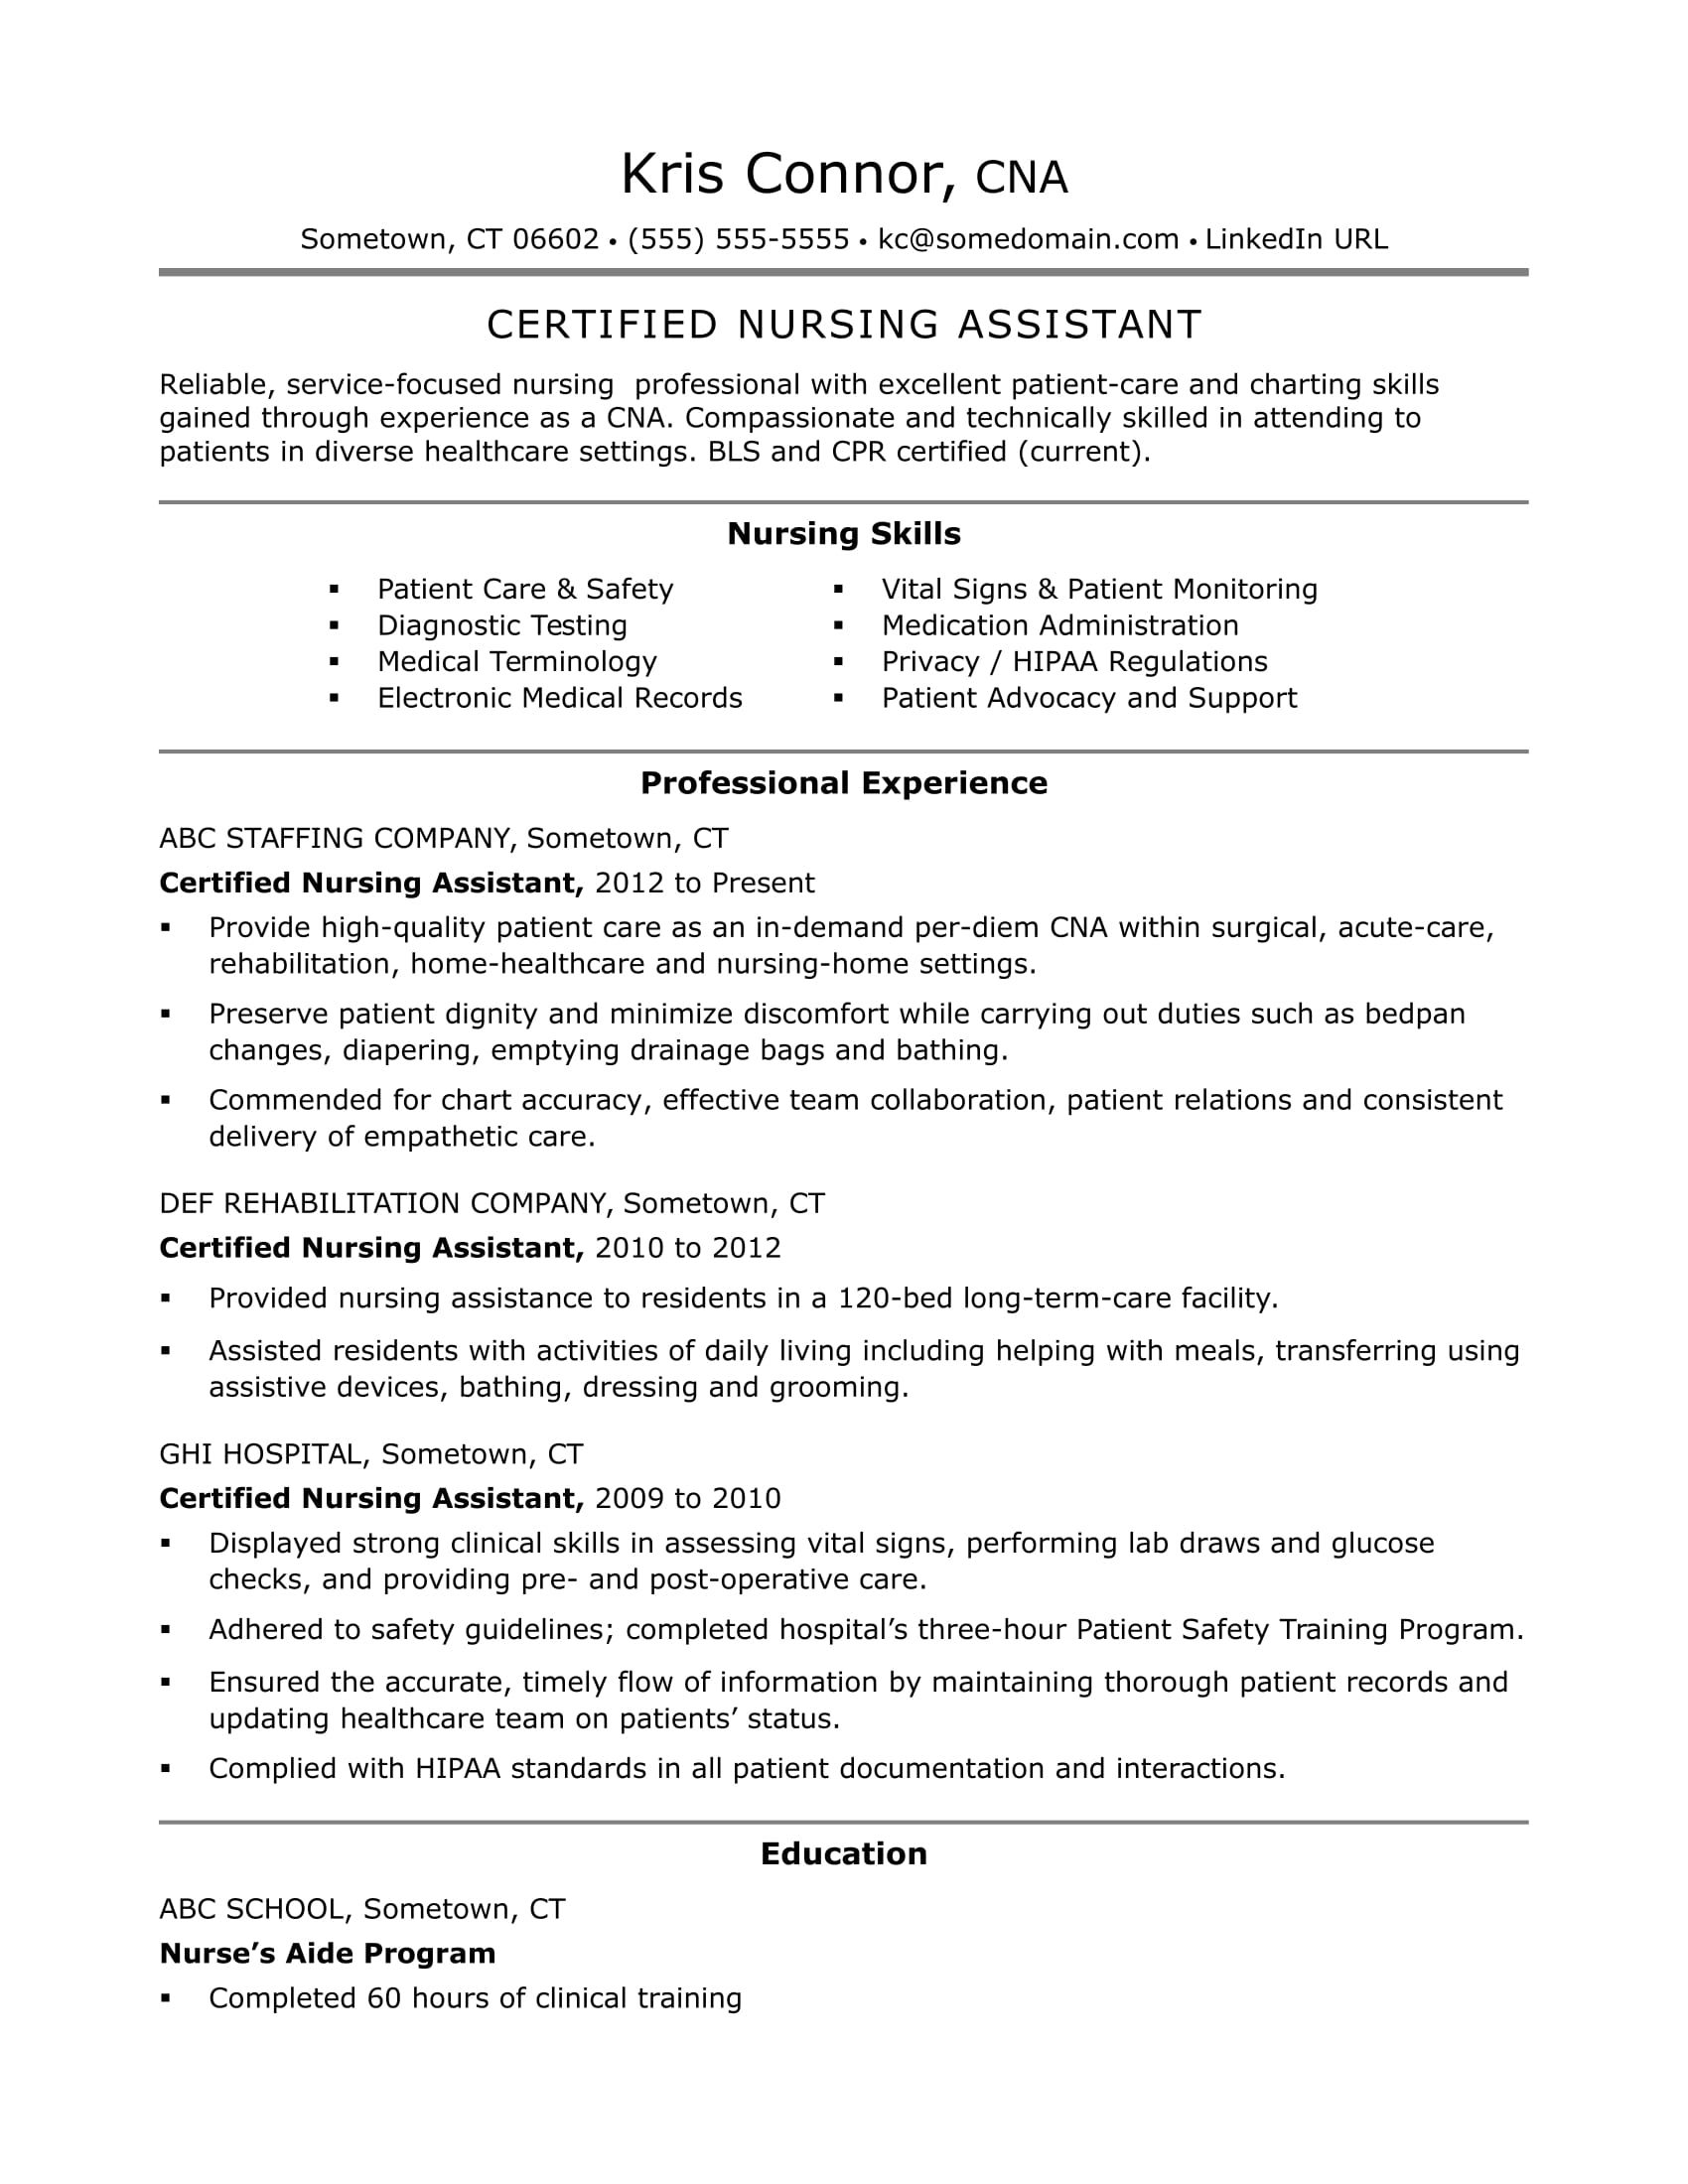 Nursing asst resume